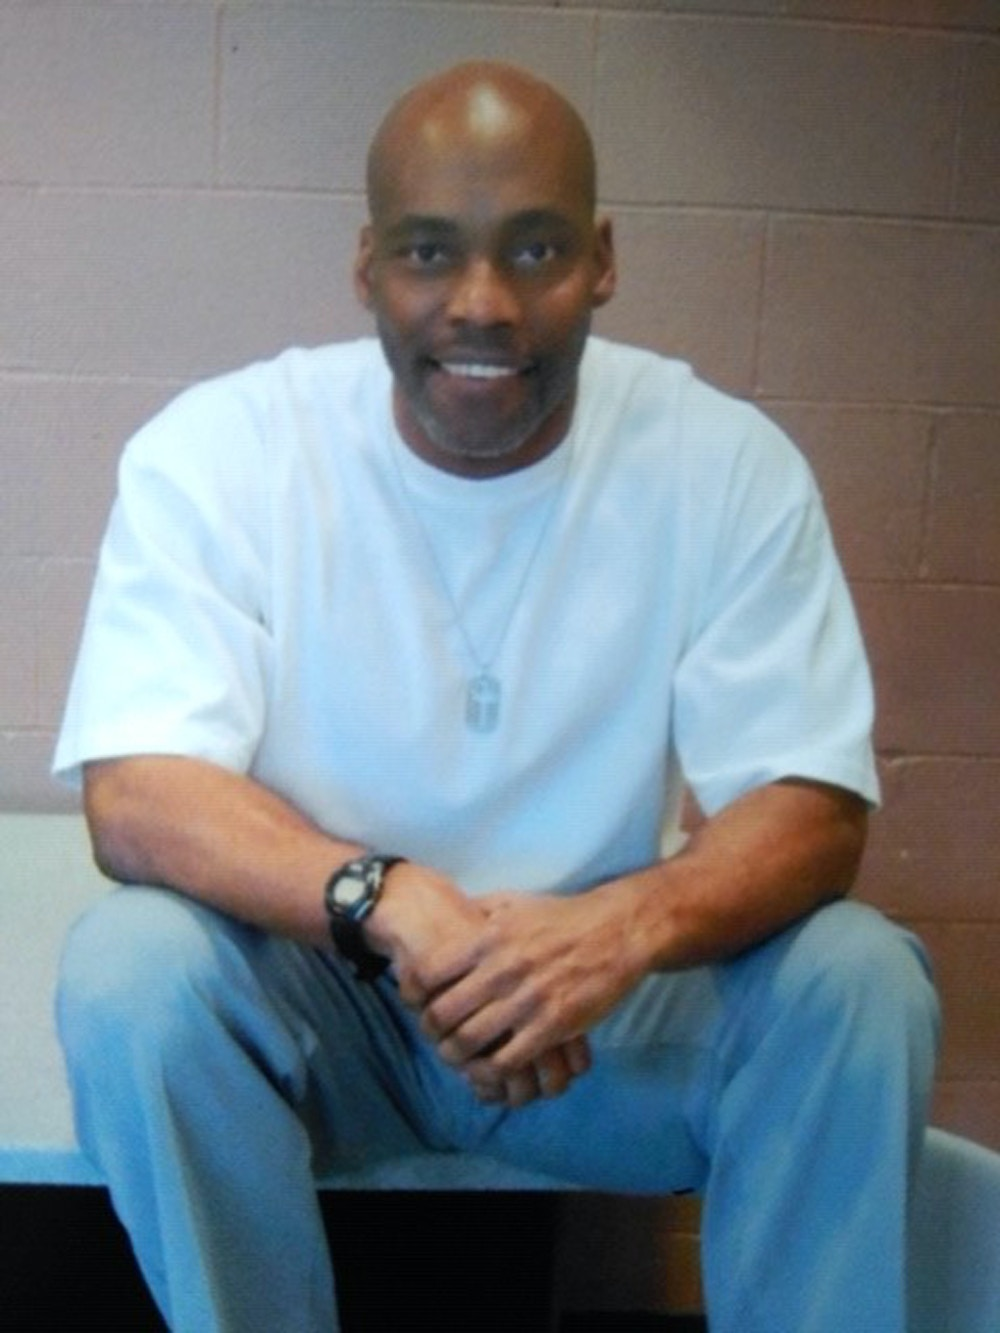 Lamar Johnson at Jefferson City Correctional Center in 2018.